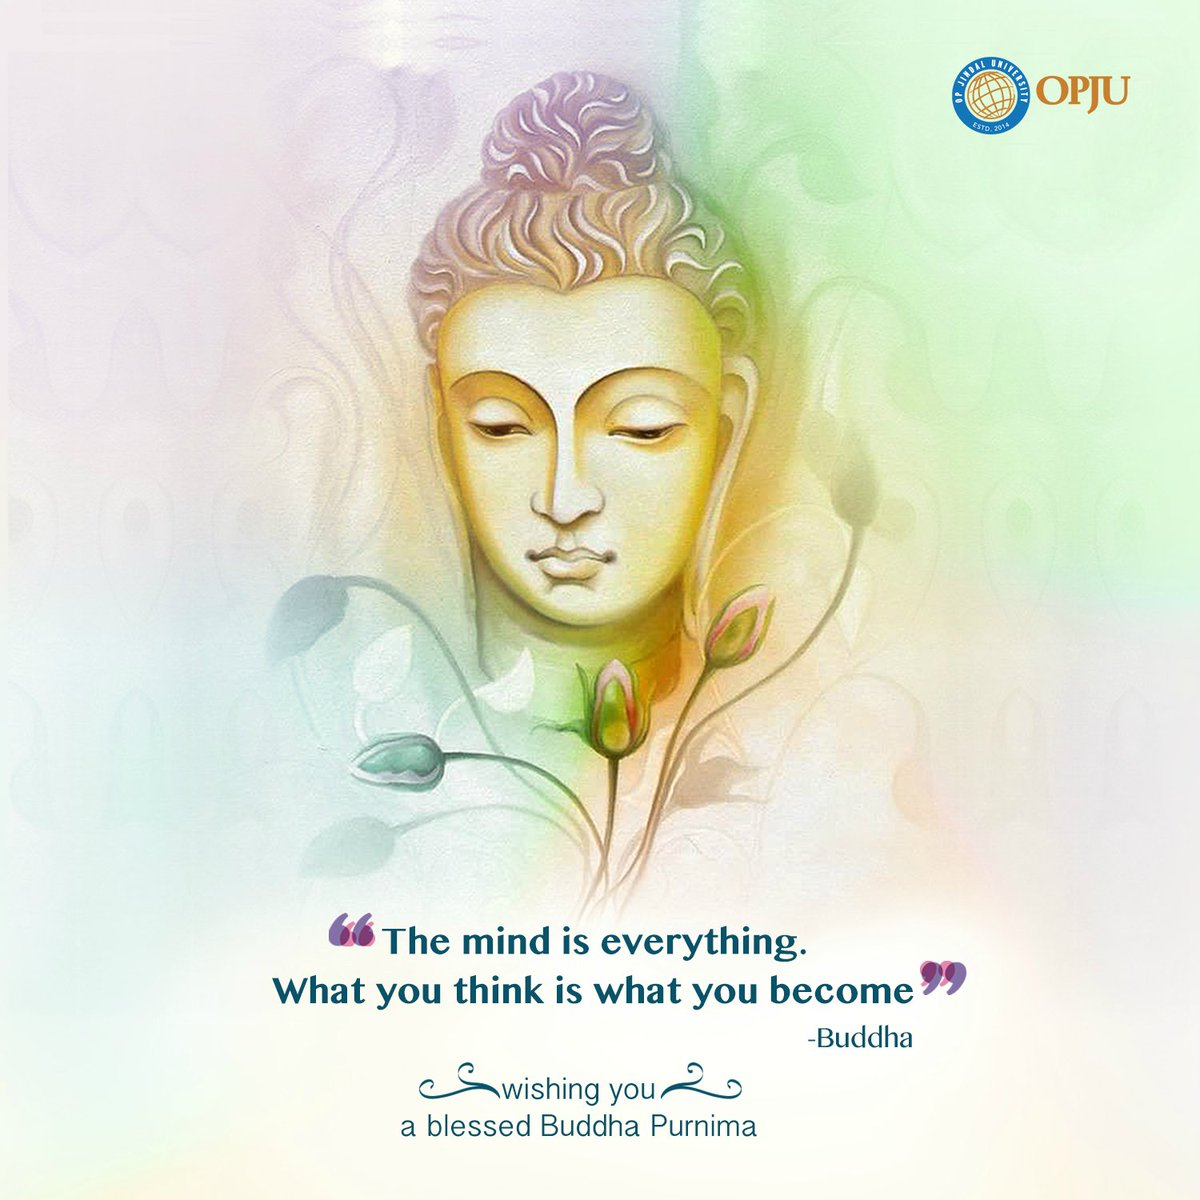 Wishing all of you a blissful #BuddhaPurnima.  #FestivalsinIndia #Buddha #OPJU #Raigarh<br>http://pic.twitter.com/EsPHdAc8Nz